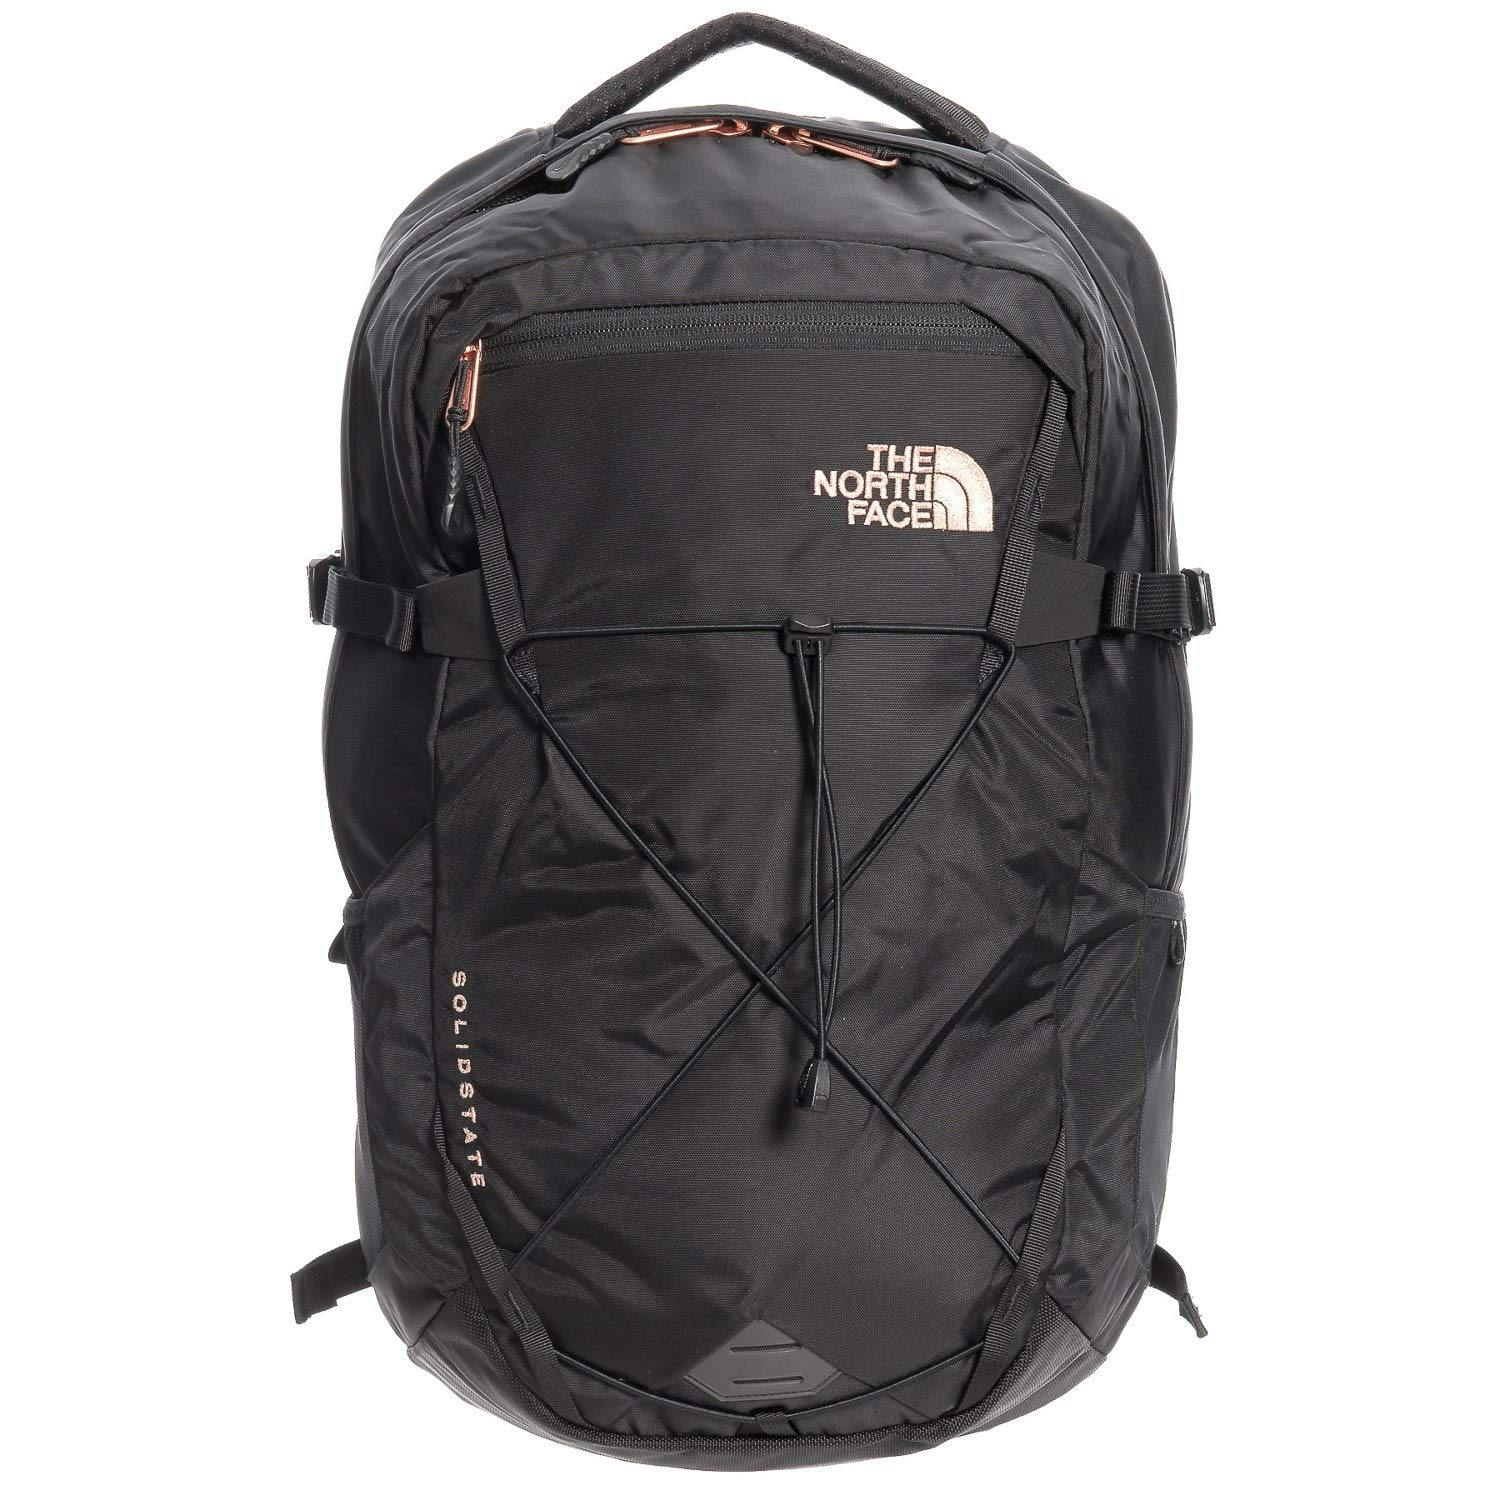 The North Face Women's Solid State Laptop Backpack, Black/Rose Gold by The North Face